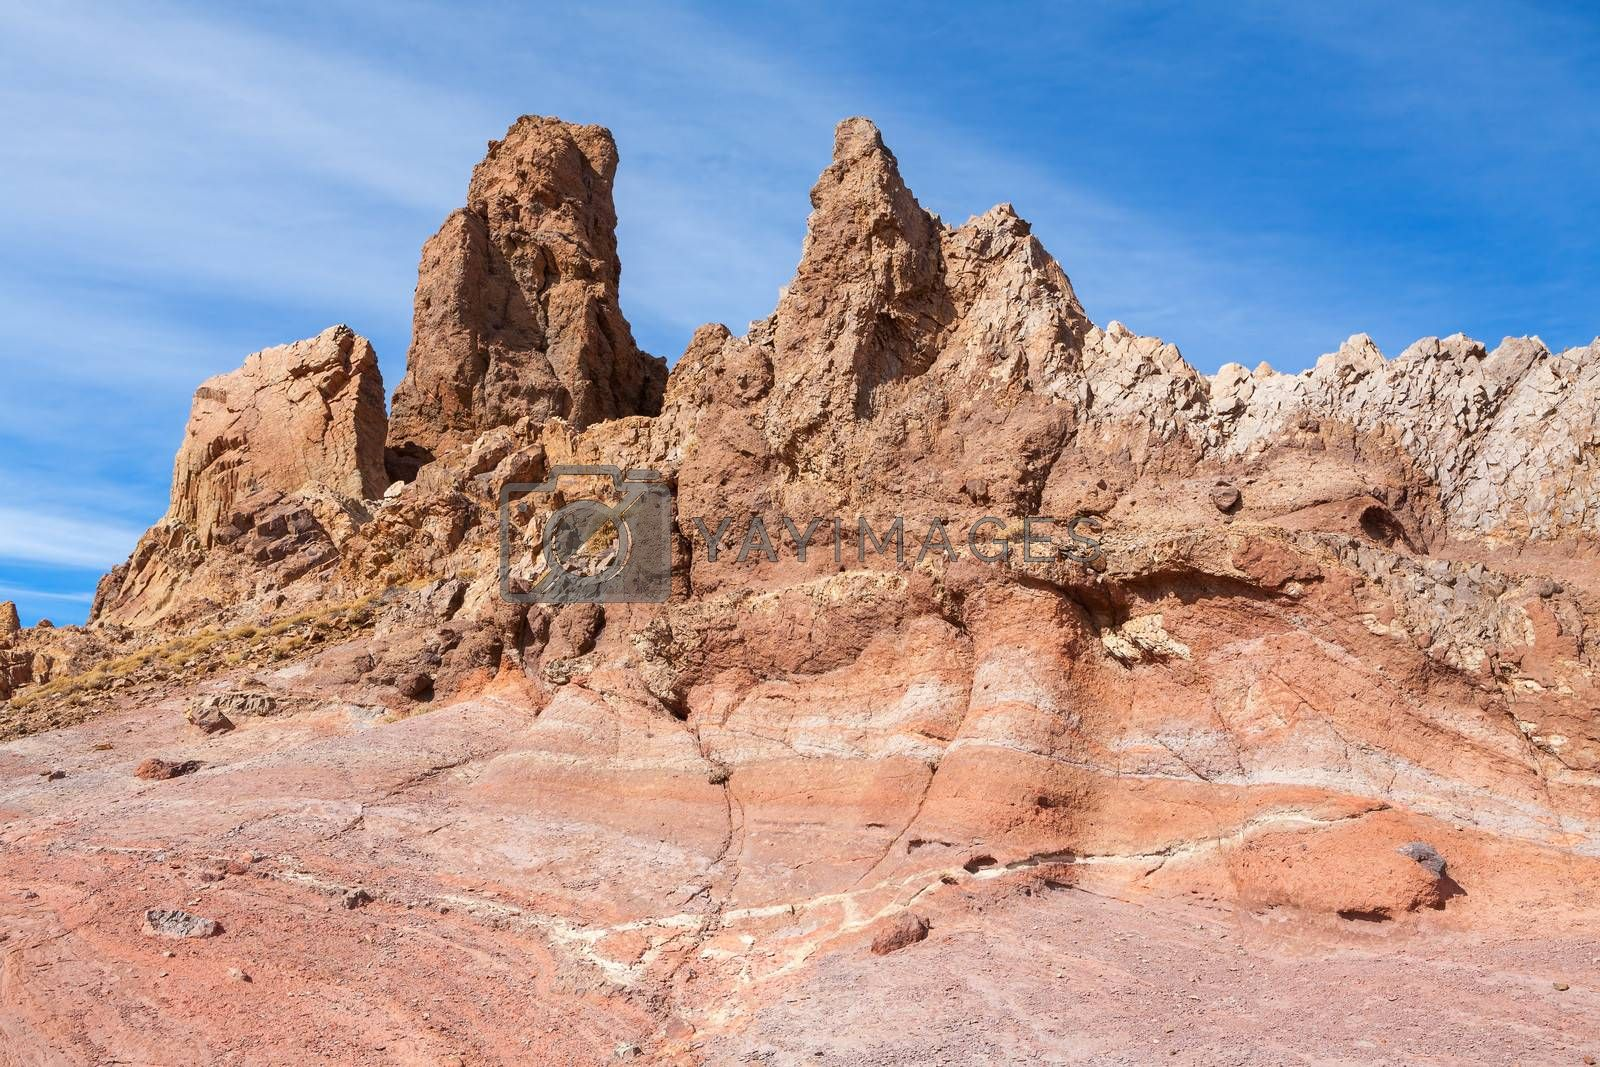 Rock formation in Teide National Park. Tenerife, Canary Islands, Spain